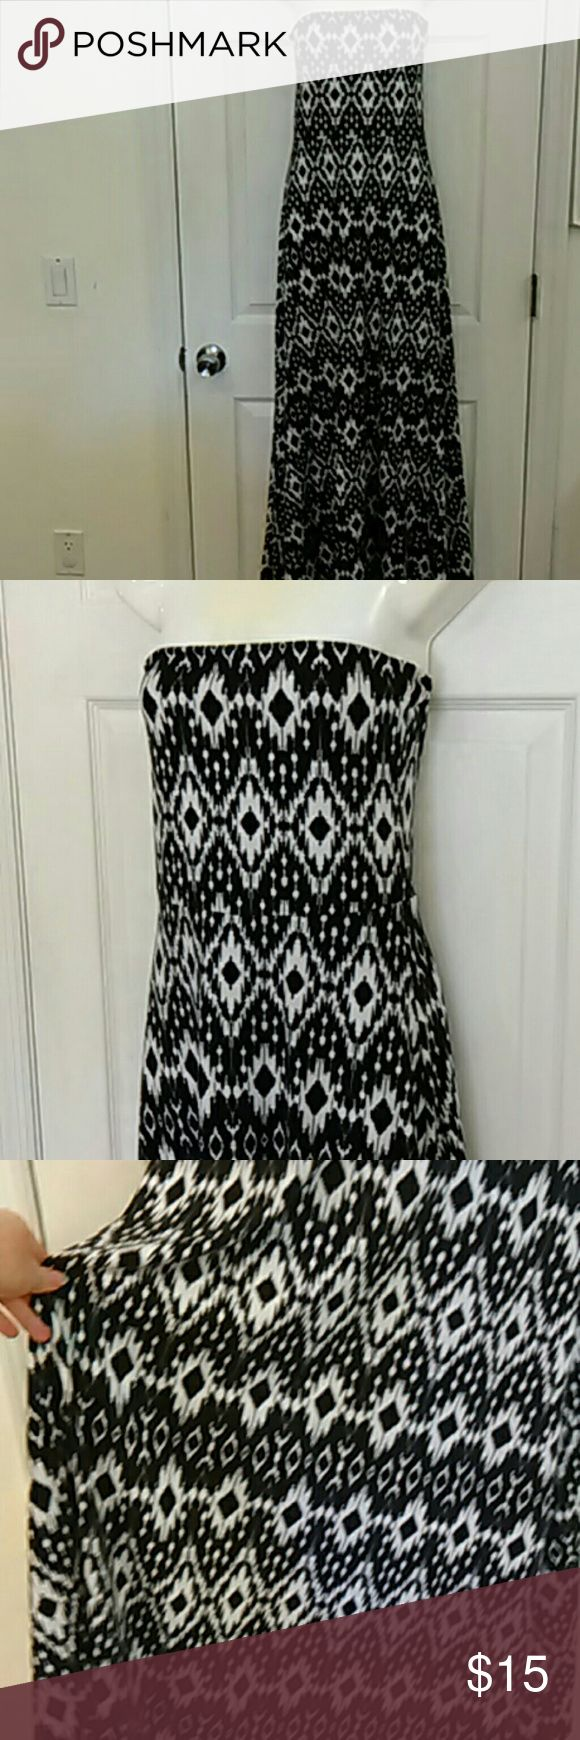 Maxi dress & skirt aztec tribal print S/M Lovely piece in thick black and white Aztec print!   Can be worn as a strapless bandeau maxi dress, or fold down the top for an effortless maxi skirt.  Cute and flexible!  Size medium by Mudd, which is a junior line from Kohls, so fits more like a small.  Very eye-catching print!! Mudd Dresses Maxi